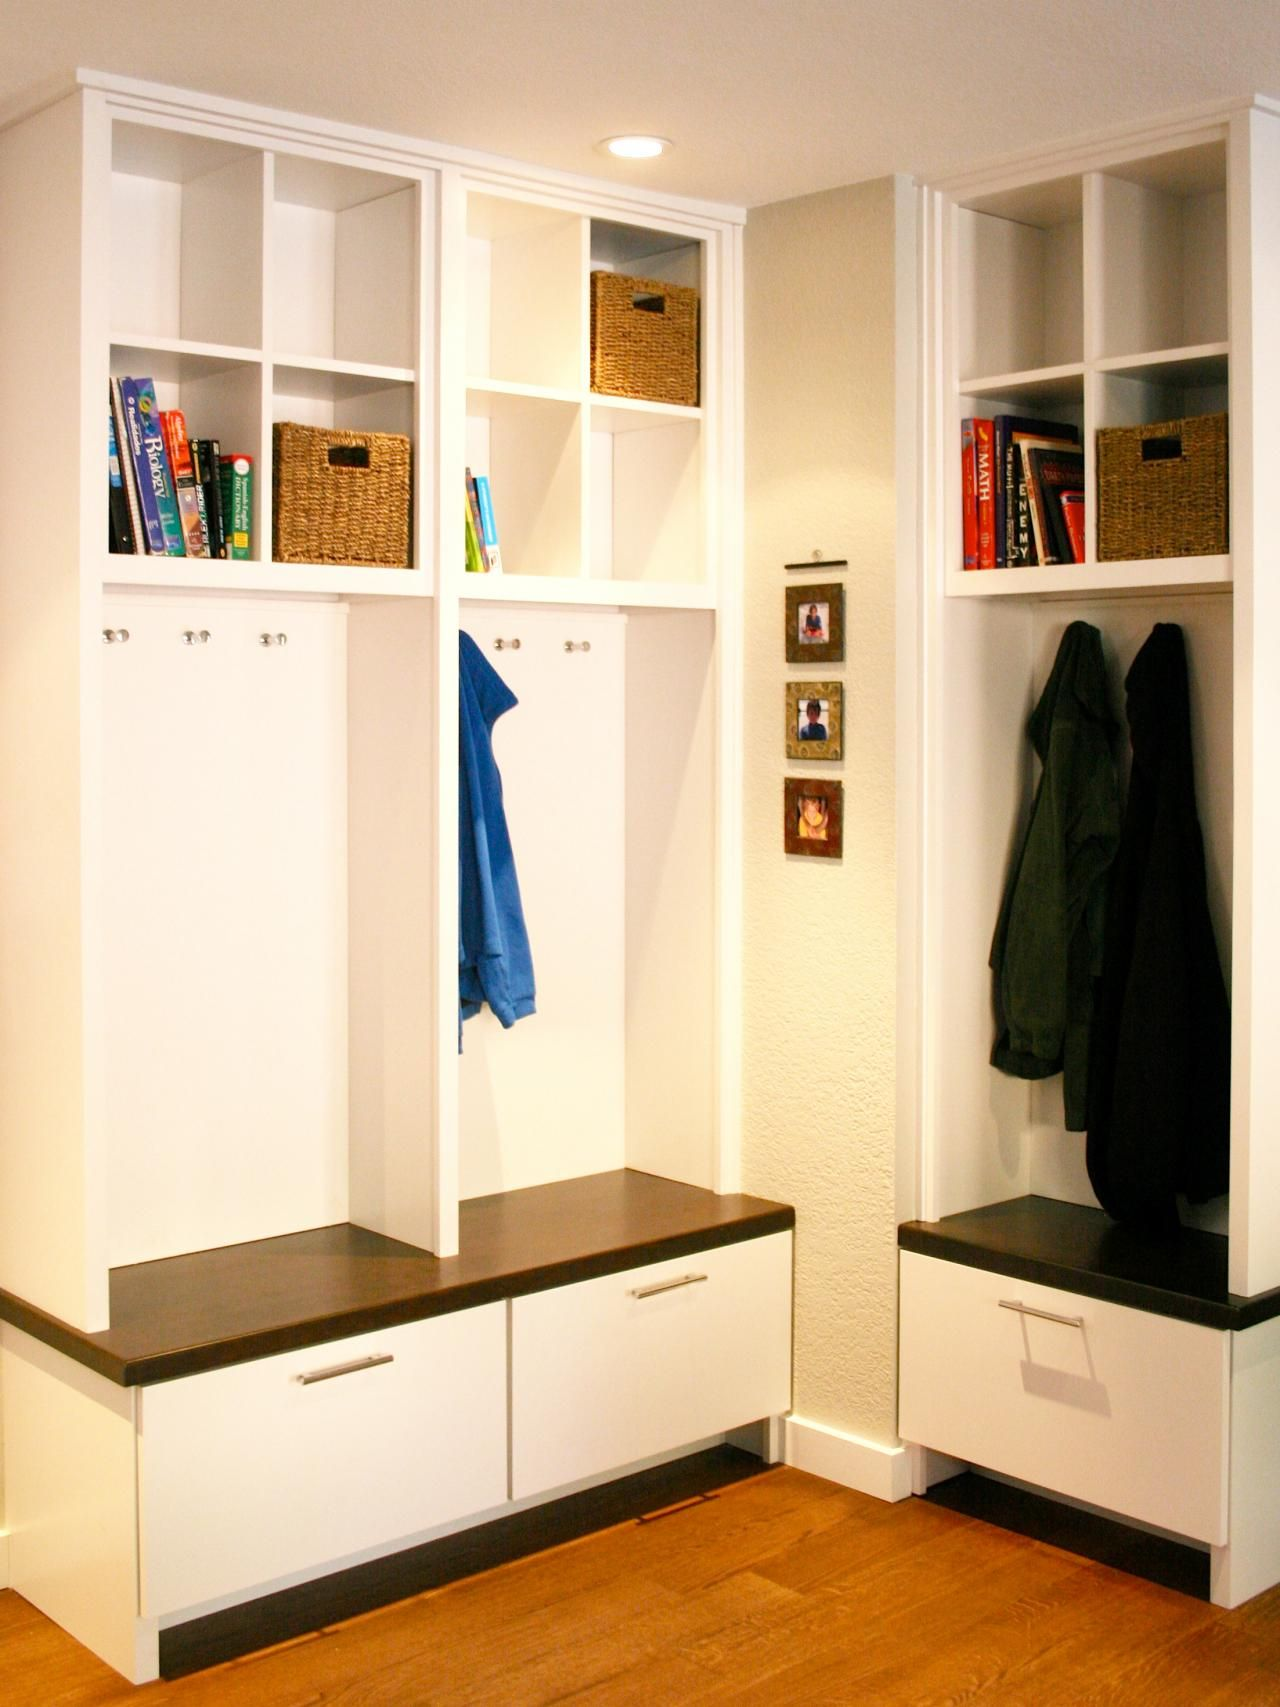 Wonderful 45+ Superb Mudroom U0026 Entryway Design Ideas With Benches And Storage Lockers  (PICTURES)   Home Dedicated